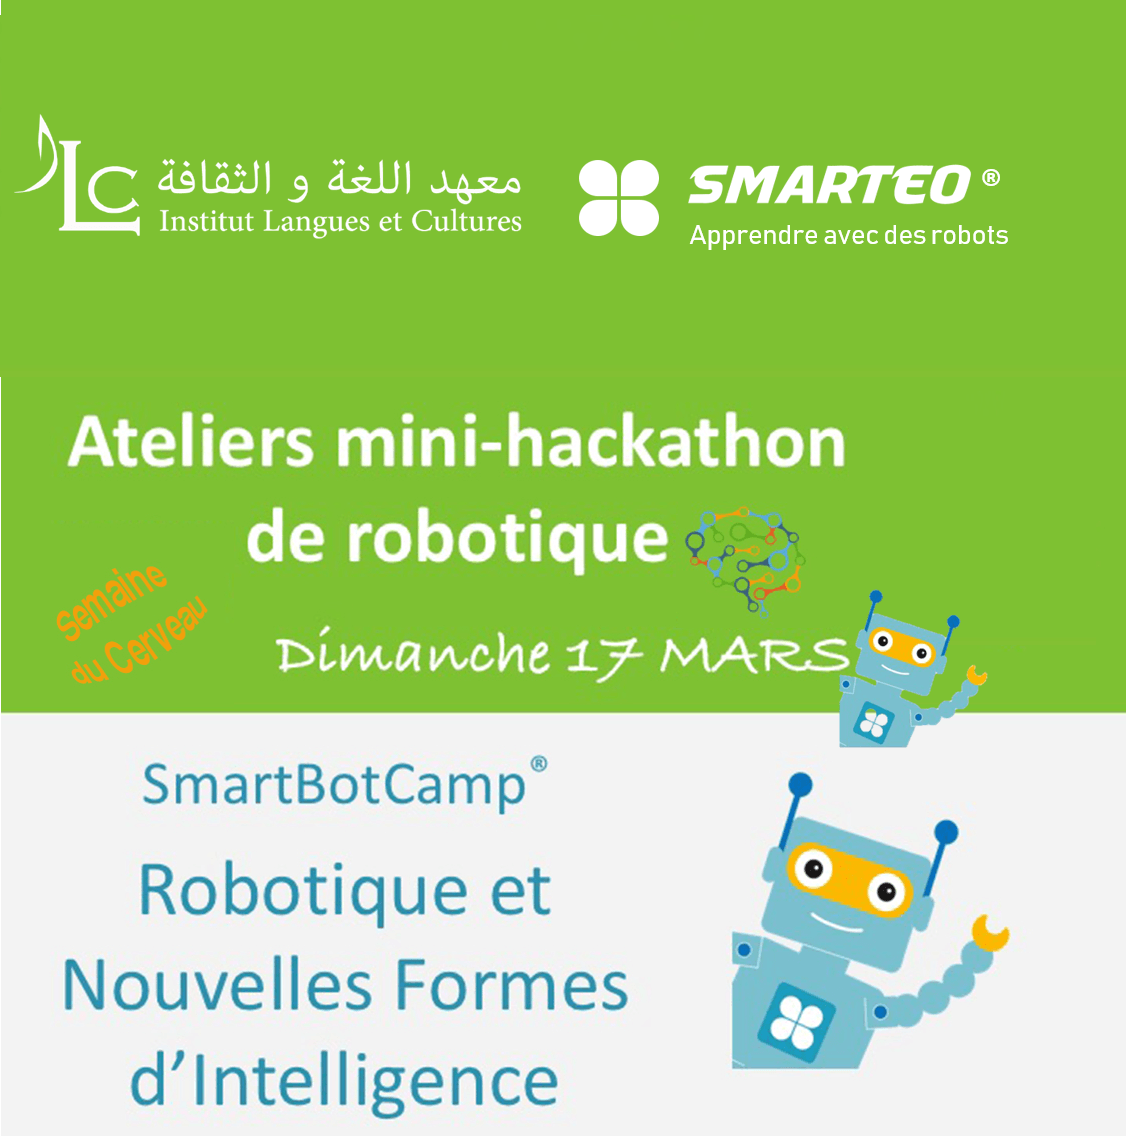 Ateliers mini-hackathon  de robotique